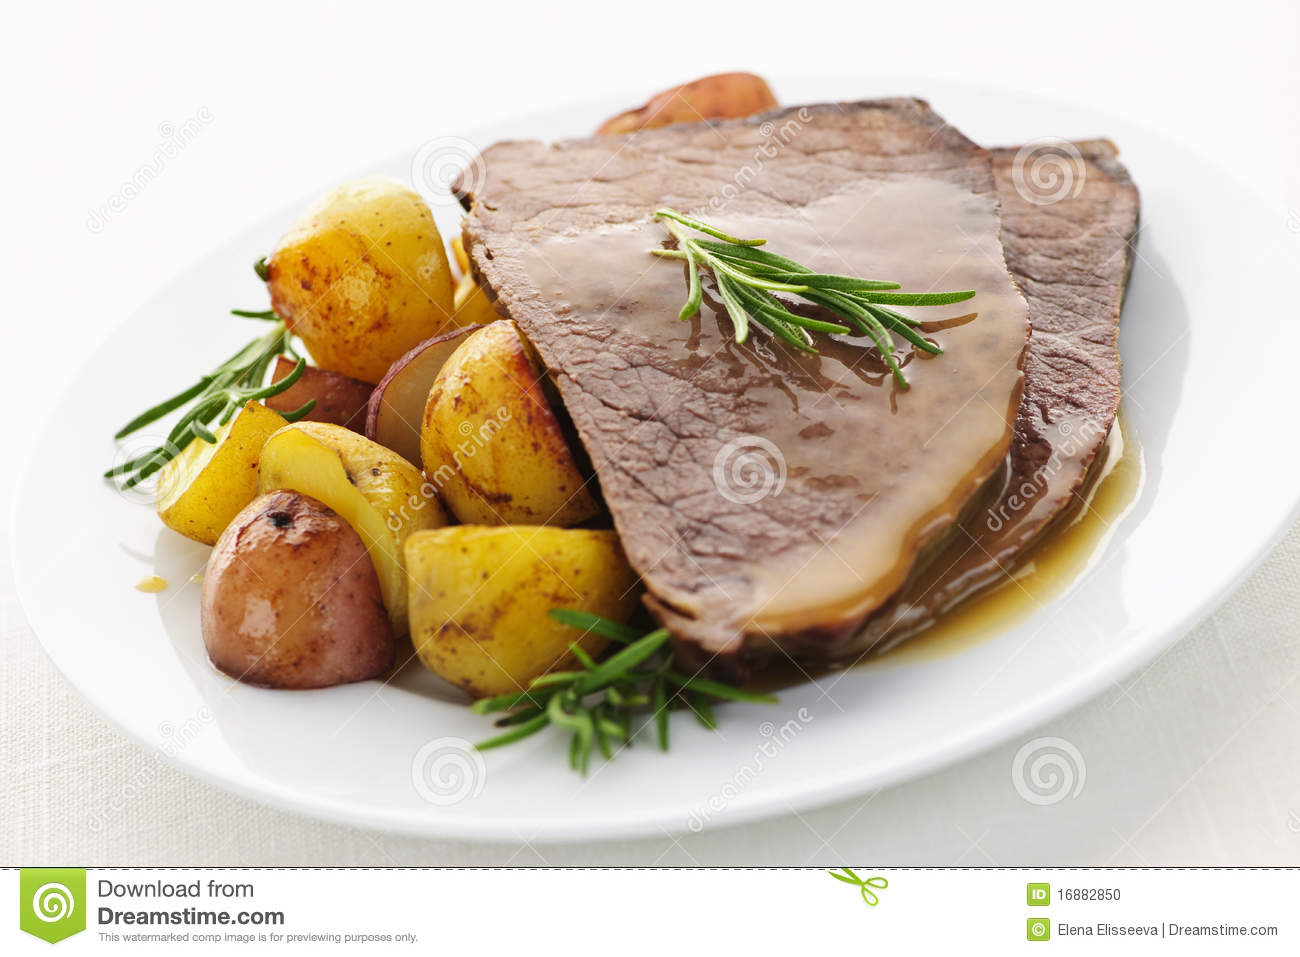 Roast Beef And Potatoes Stock Photo - Image: 16882850